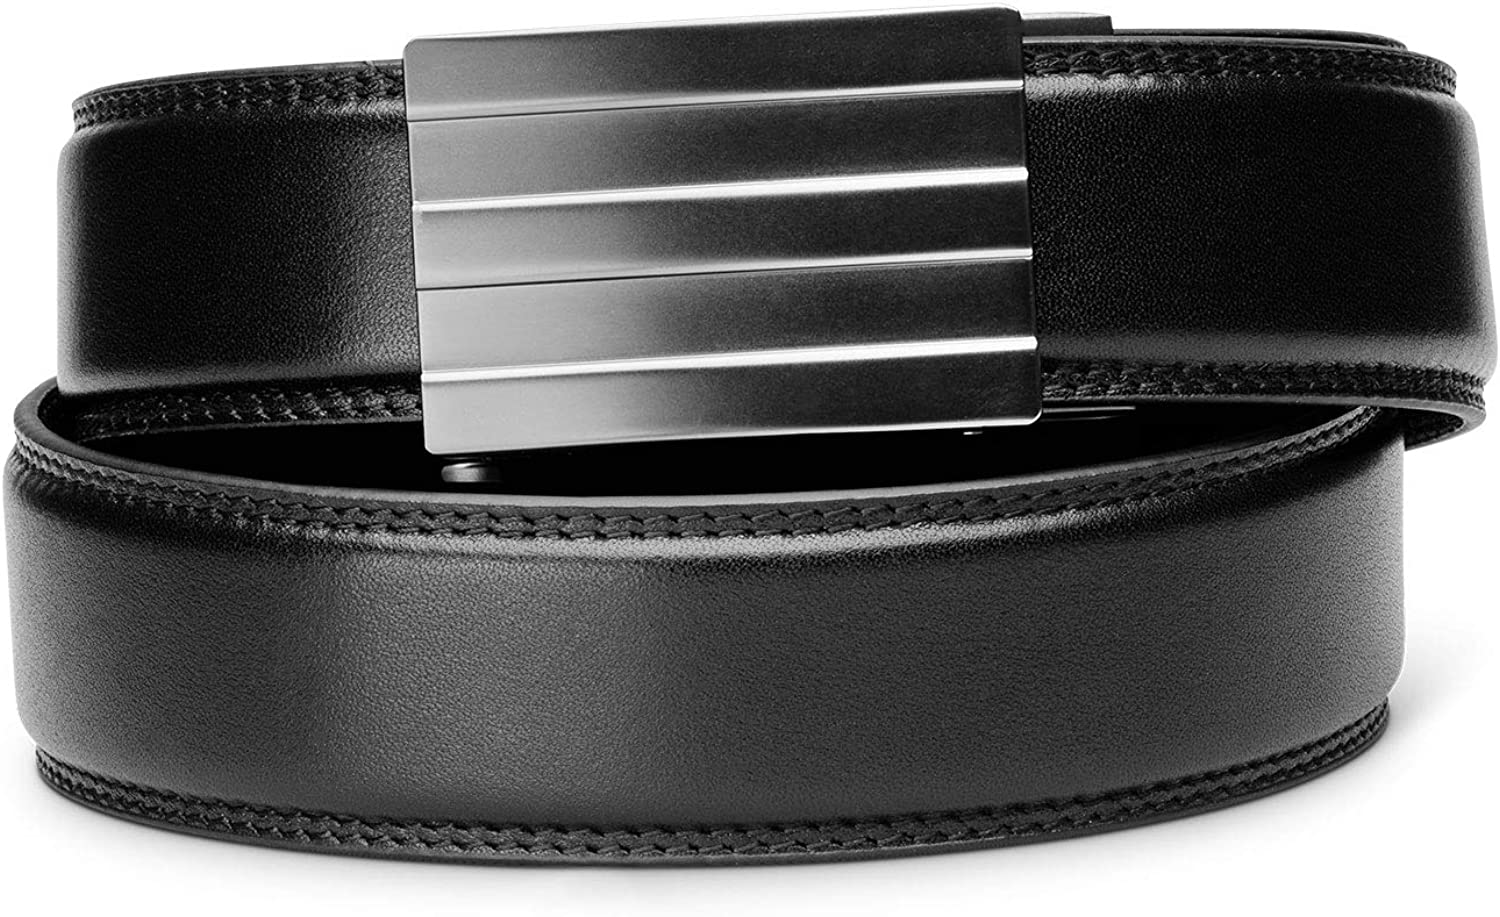 Kore Men S Full Grain Leather Track Belt Endeavor Alloy Buckle At Amazon Men S Clothing Store Kore essentials x5 tactical gun belt (comfortable carry!) kore men s full grain leather track belt endeavor alloy buckle